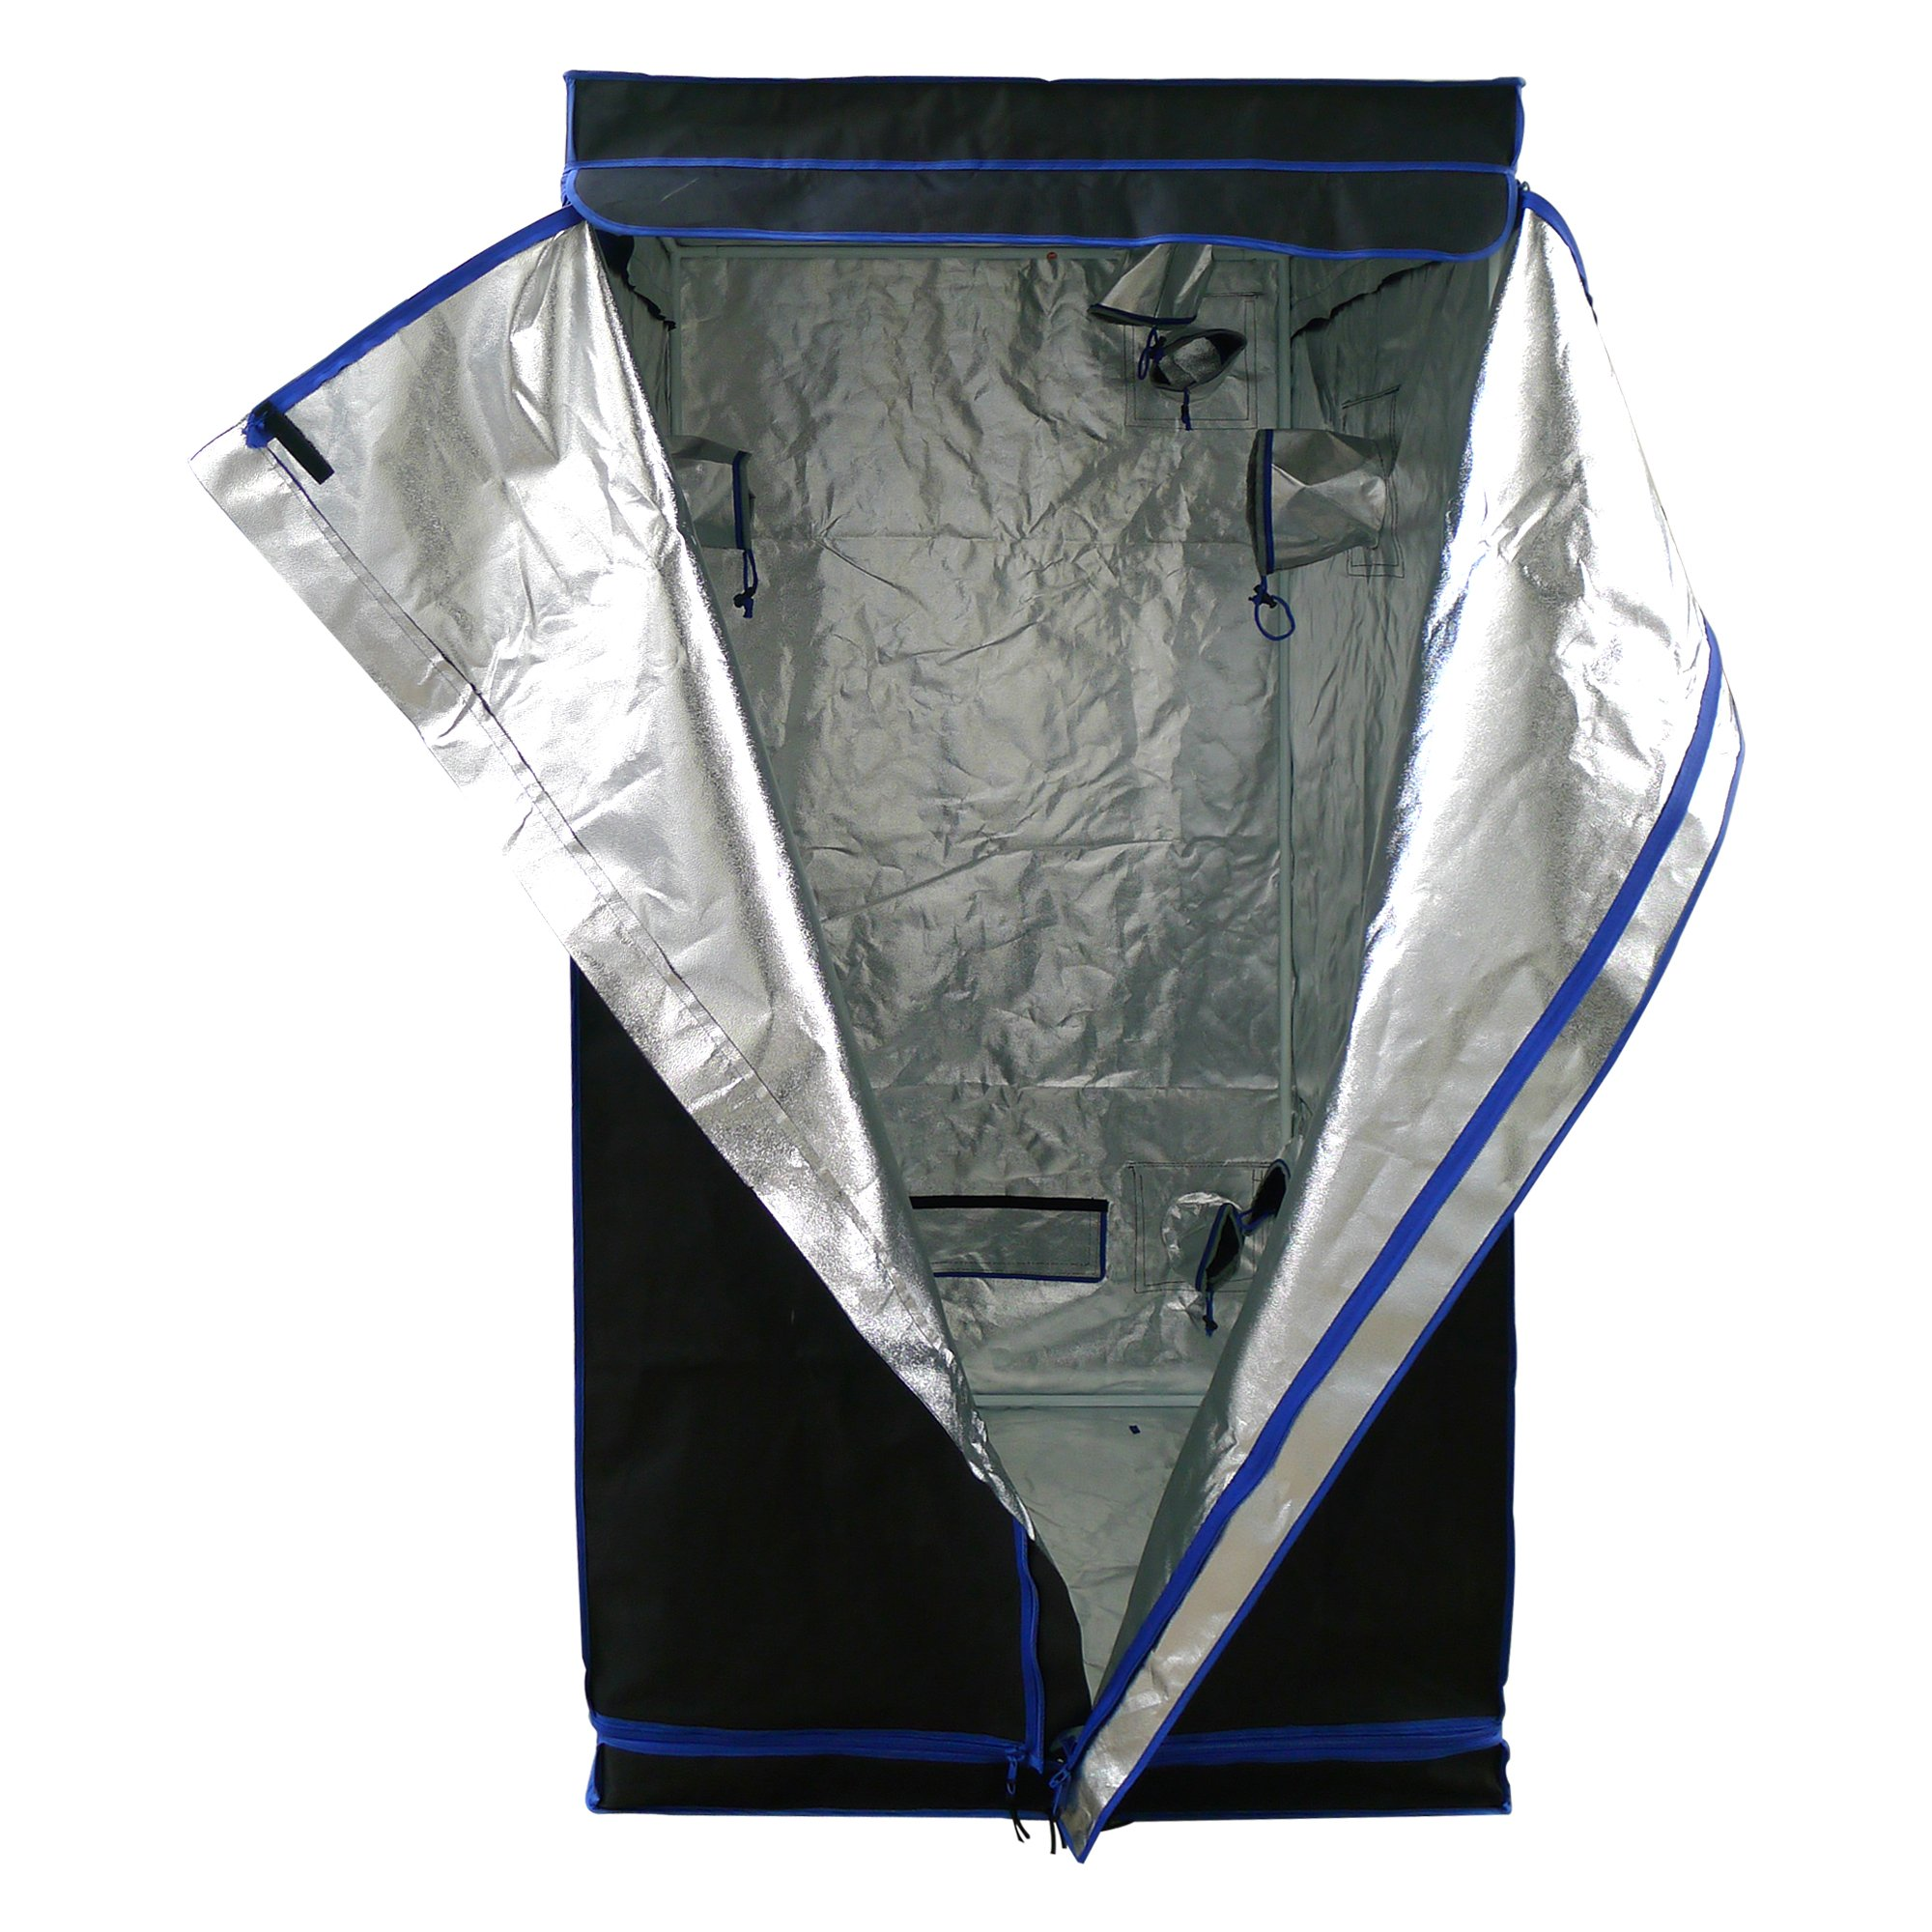 Hydroplanet 36x36x72 Mylar Hydroponic 600D 3'x3' Extra-Thick Canvas Grow Tent for Indoor Plant Growing (36x36x72) by Hydroplanet (Image #3)